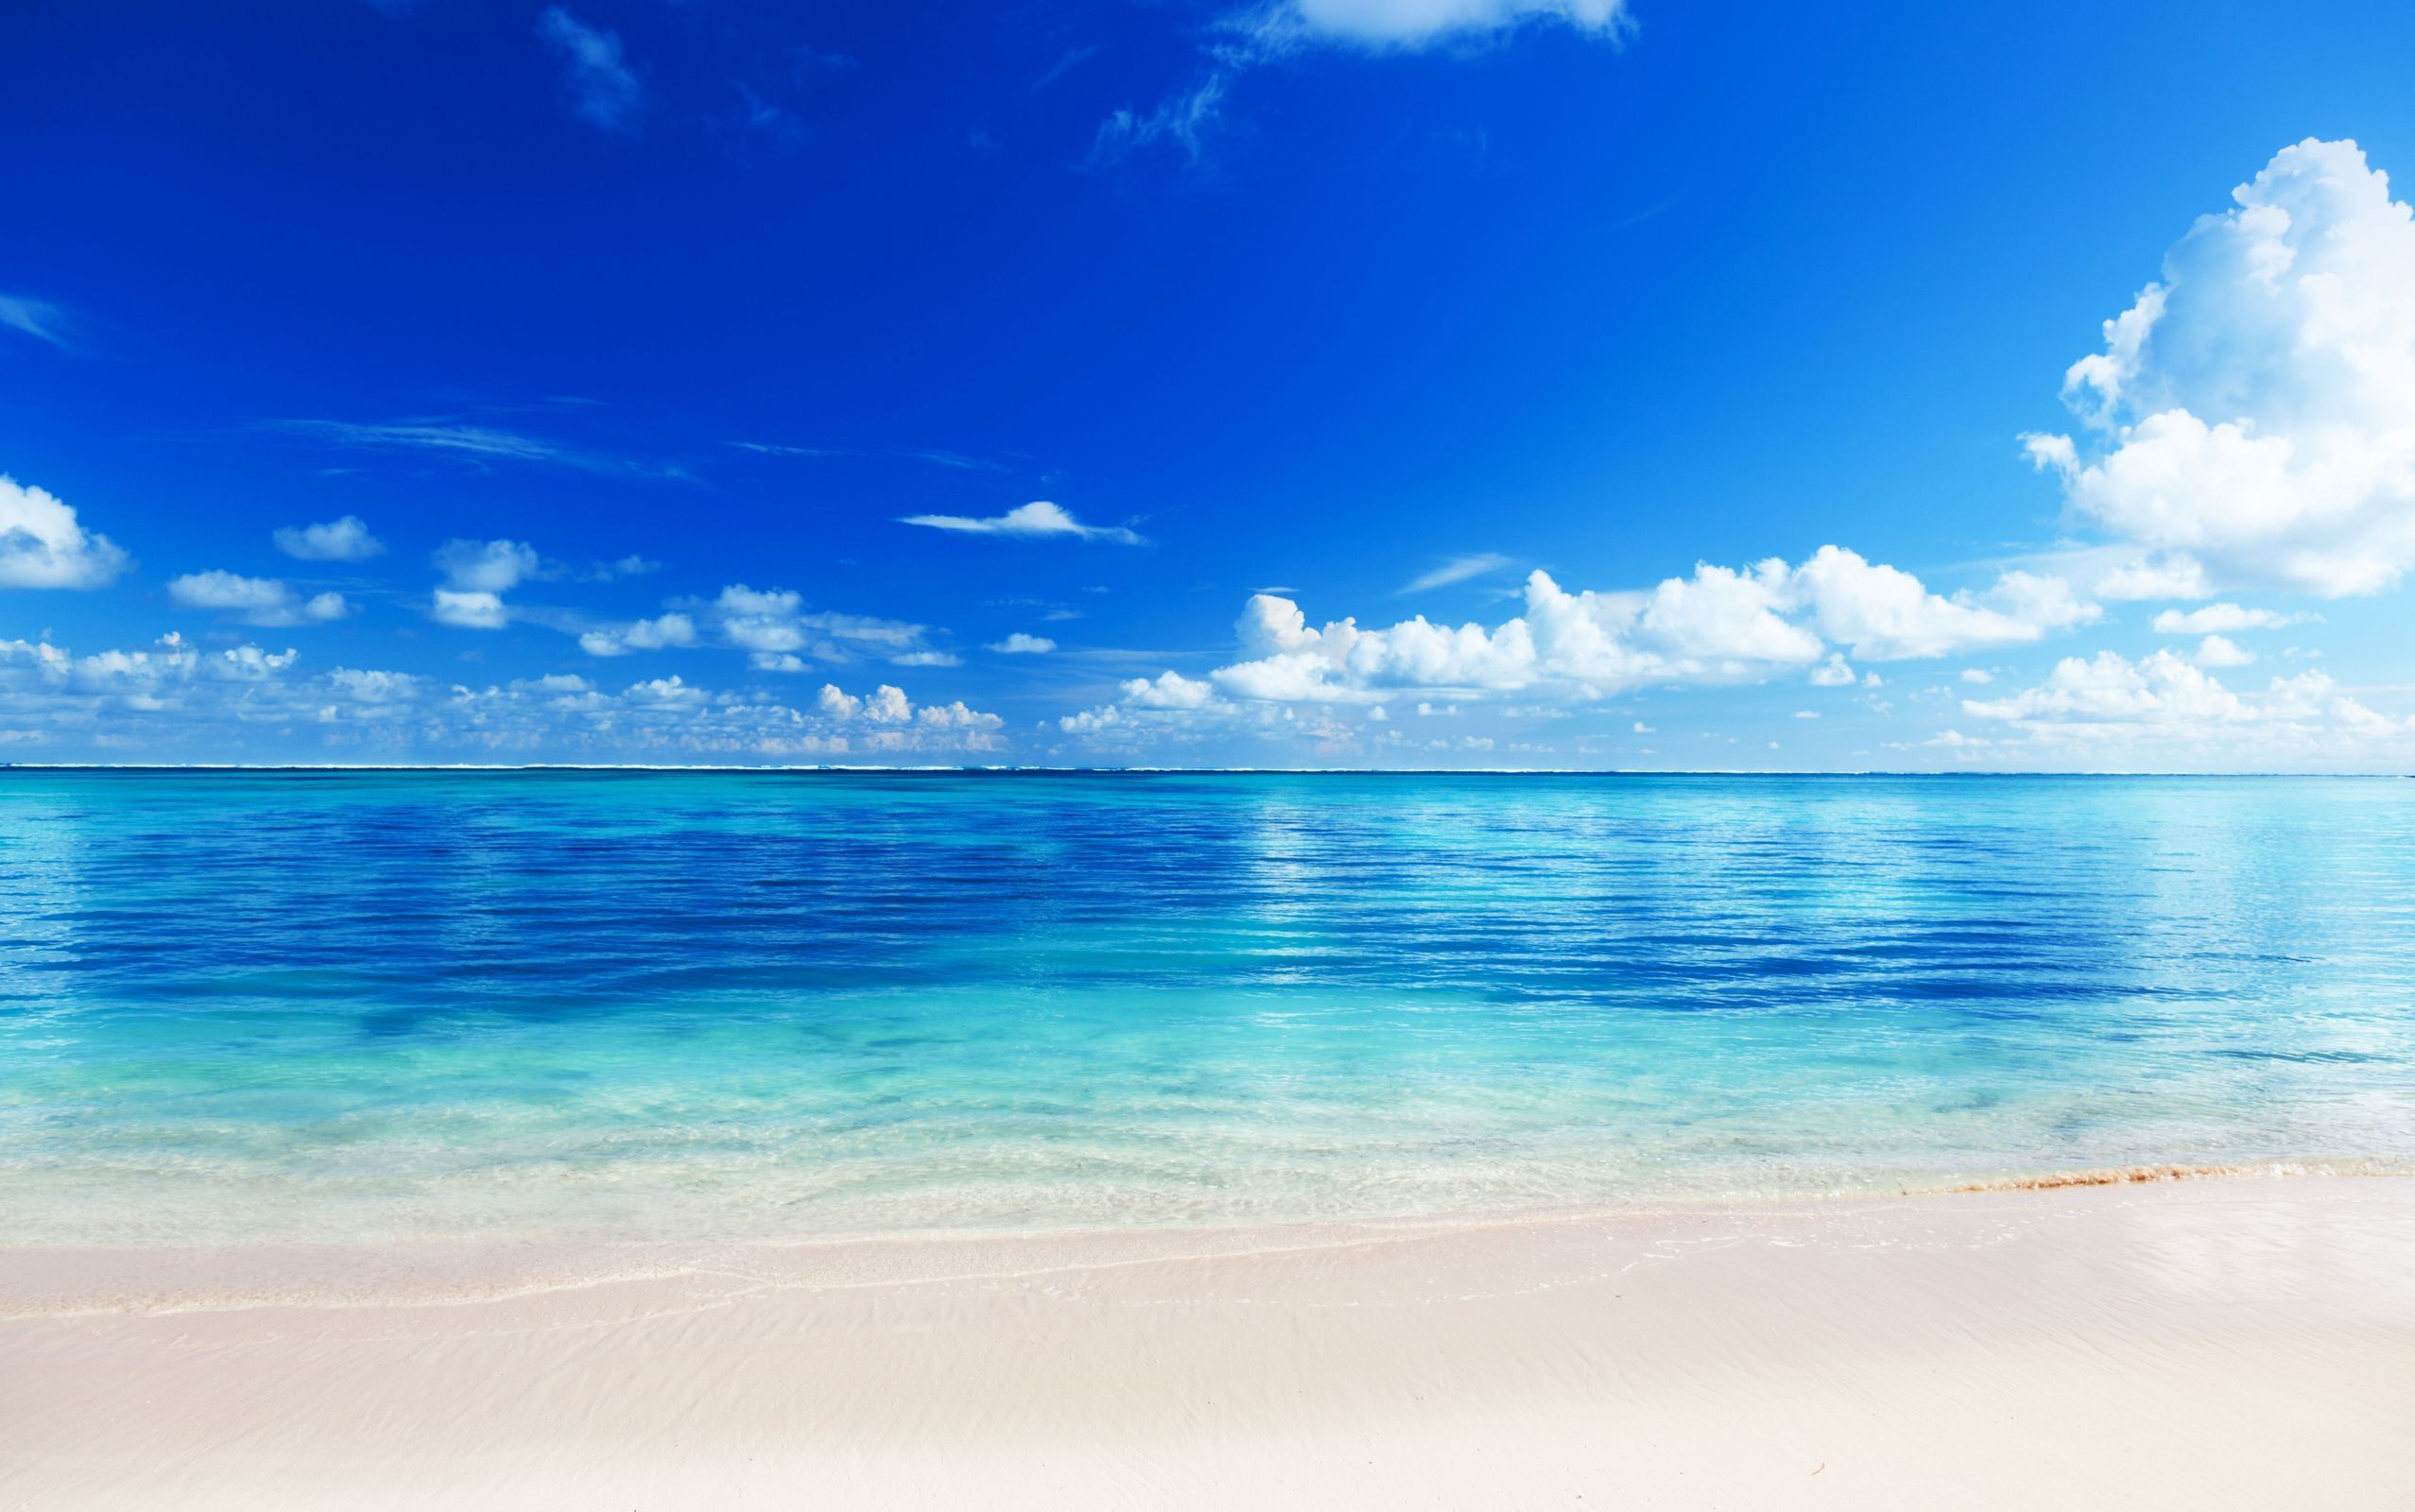 Pin by Rejane Santiago Mello on Oceans and islands Beach 2555x1600